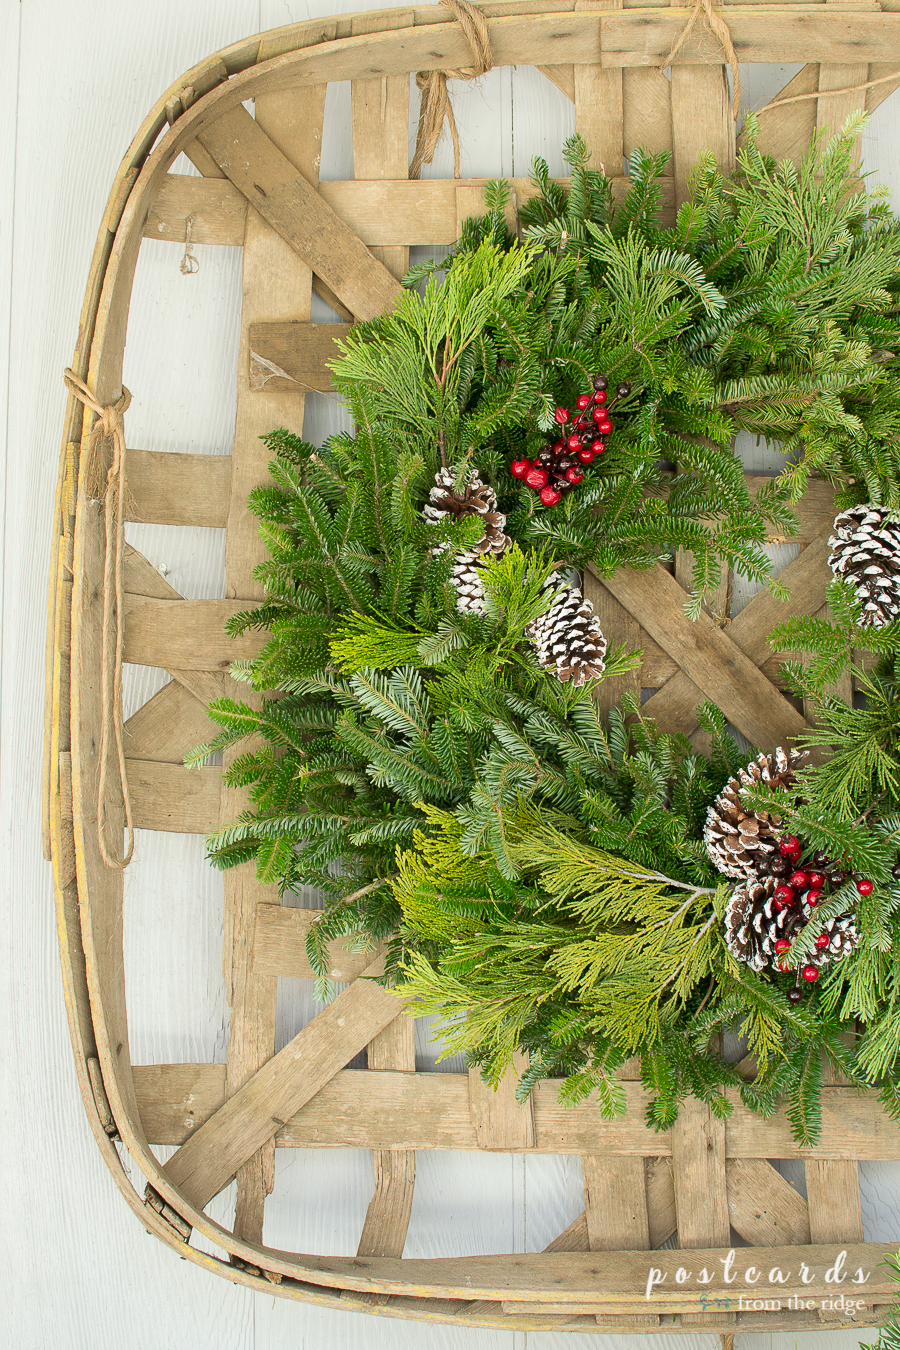 old tobacco basket with fresh green Christmas wreath